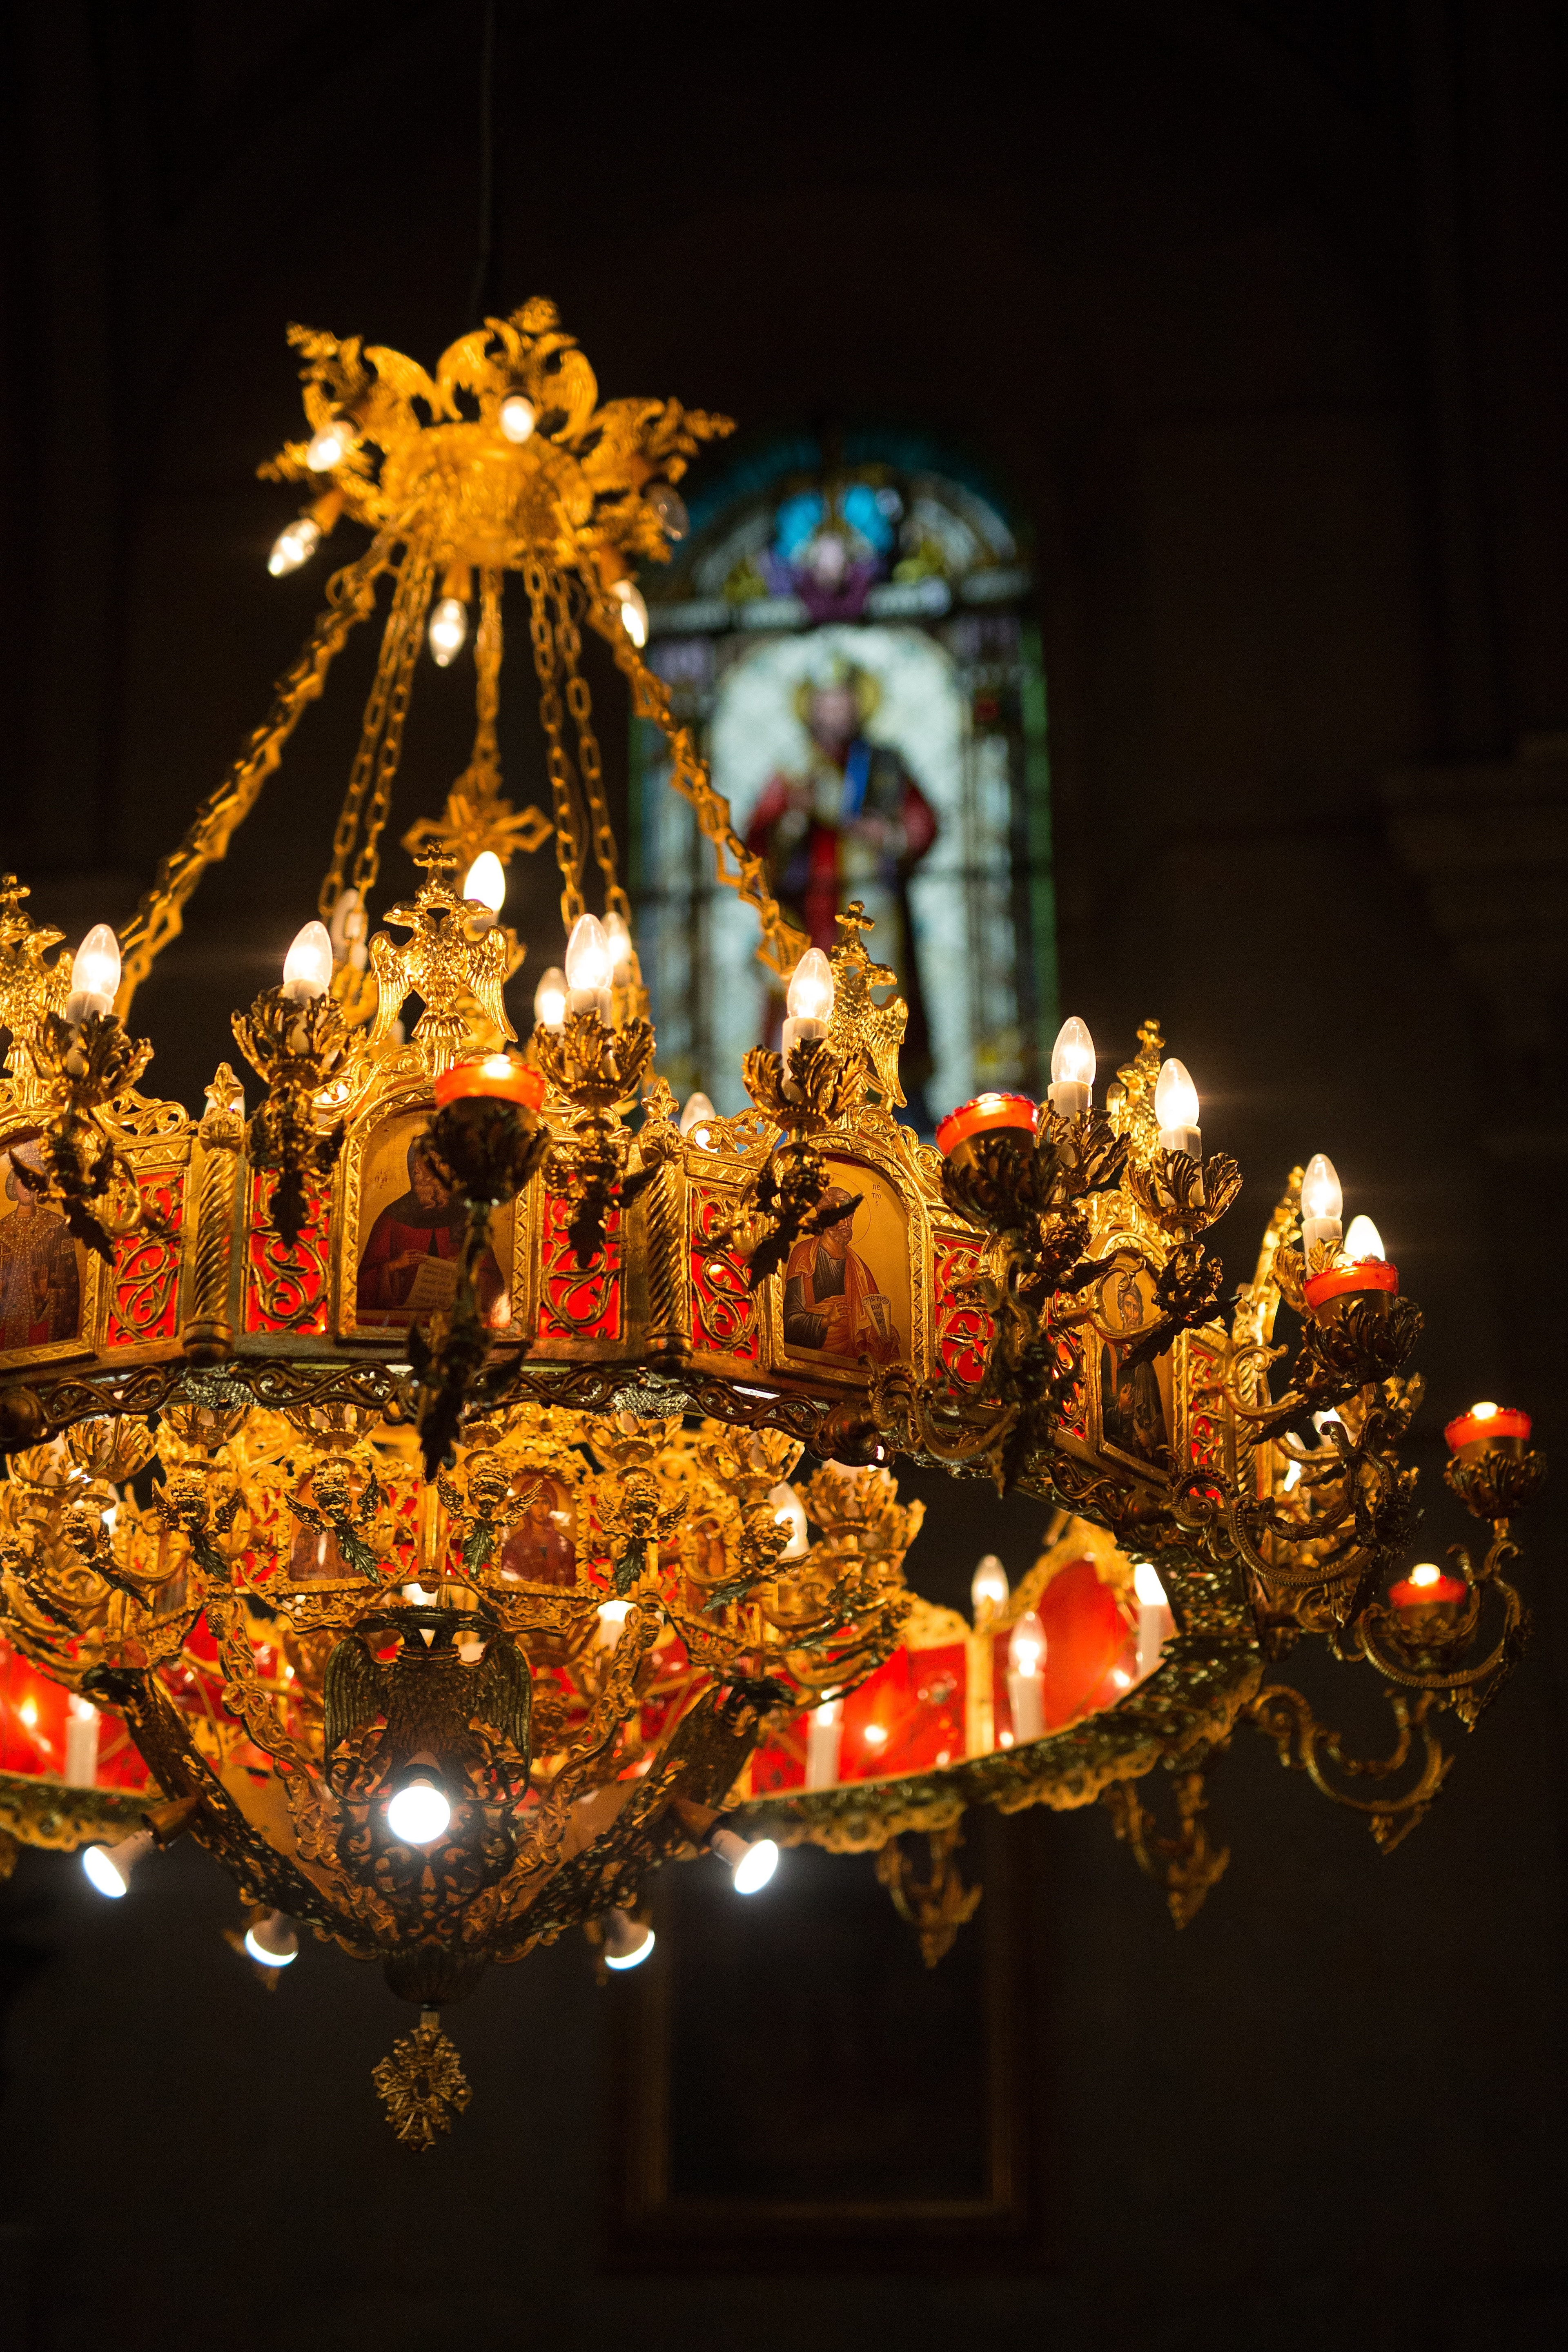 free picture church russian orthodox chandelier gold luxury candle interior design religion light